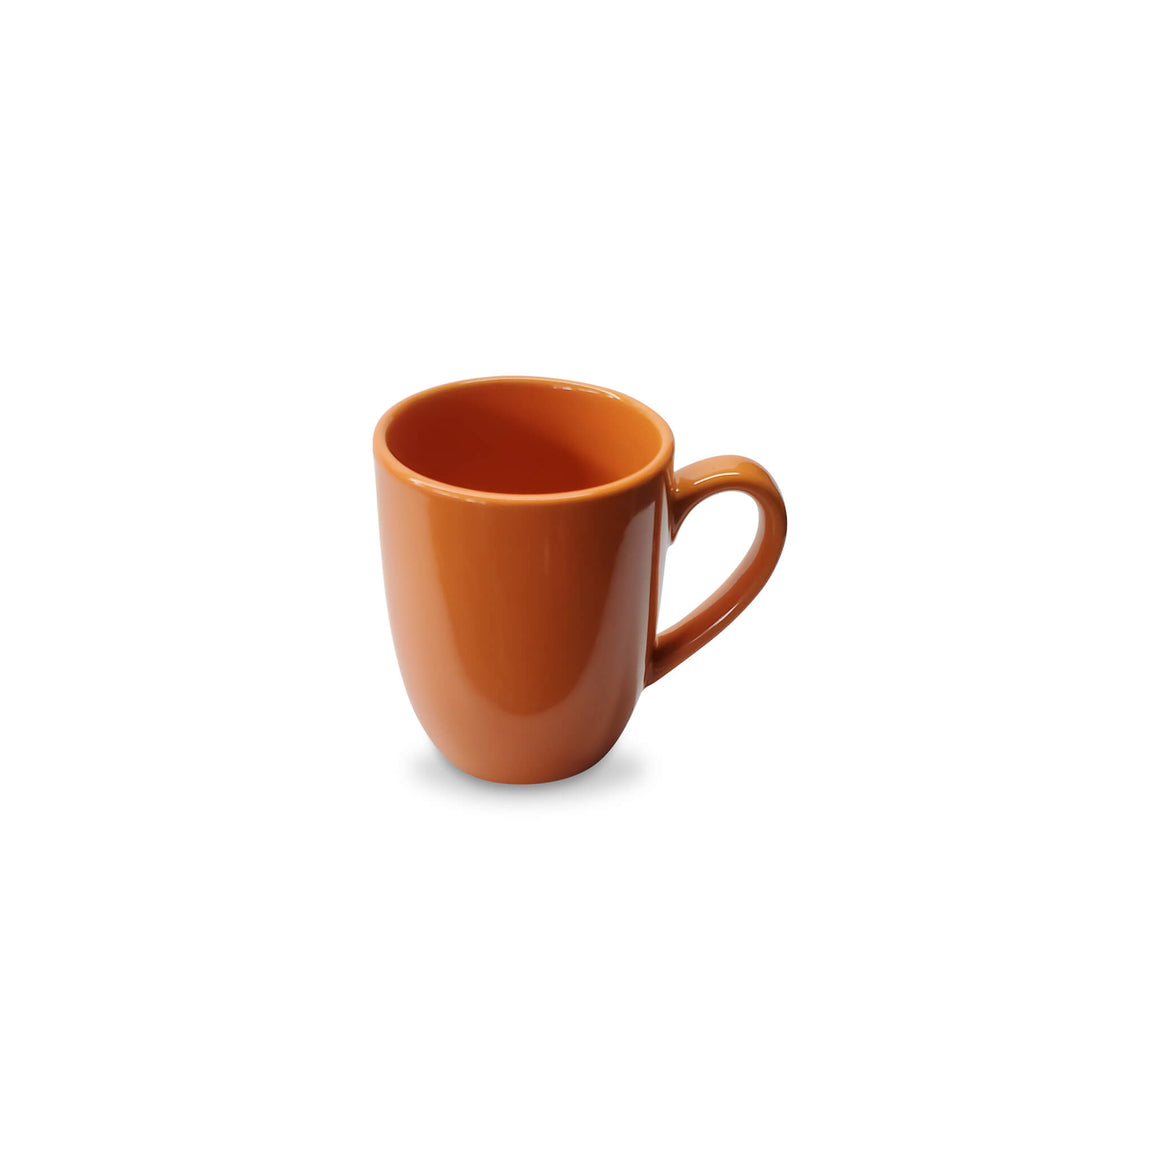 Yesterday's Mug | Gently Used, Orange Porcelain Mug